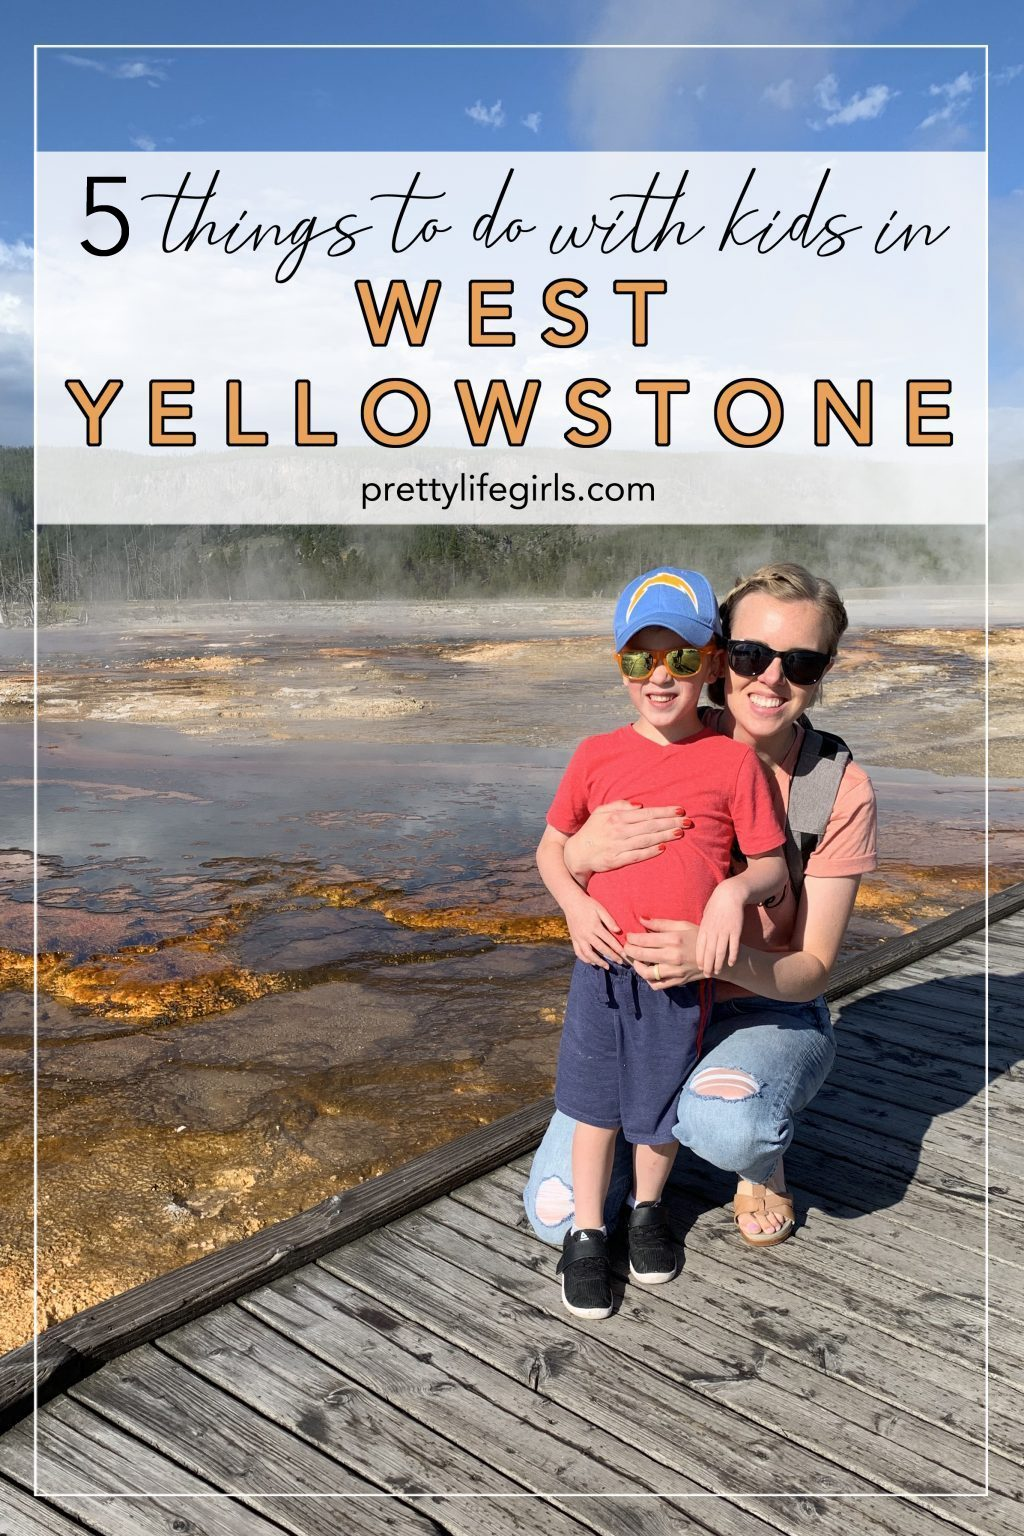 west yellowstone with kids pin